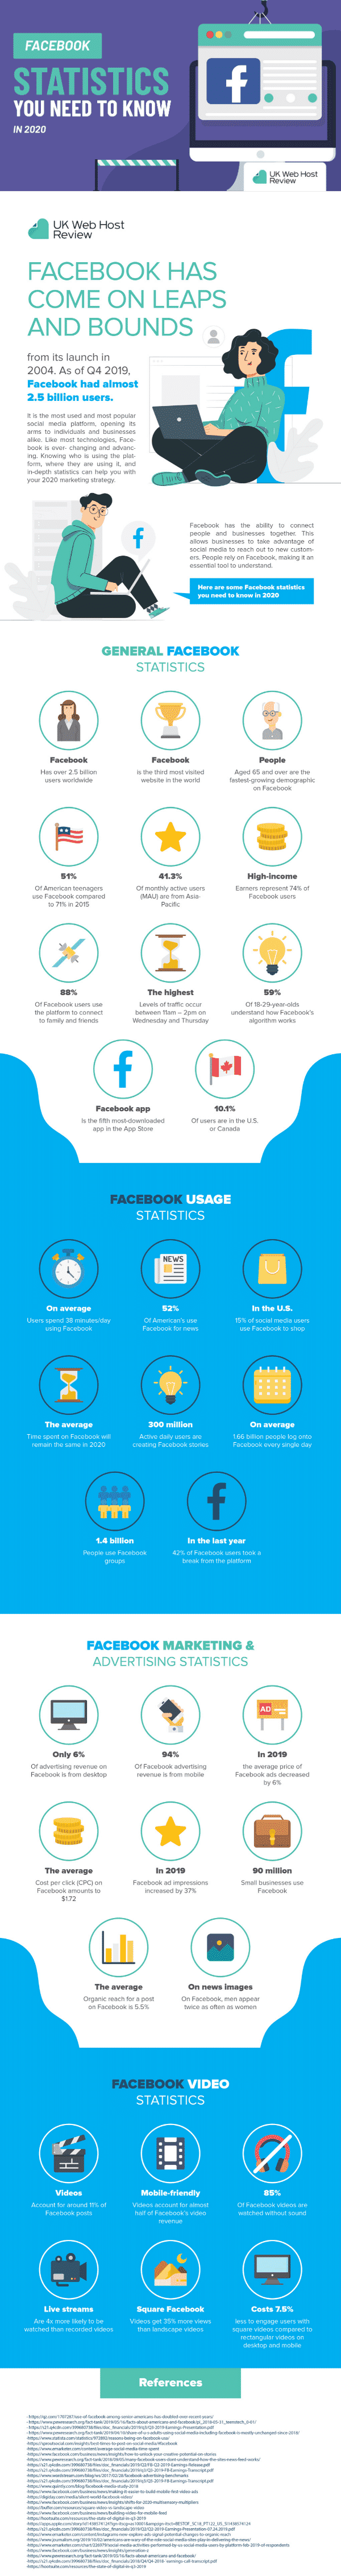 Learn more about how Facebook has grown leaps and bounds throughout the years, in this great infographic!